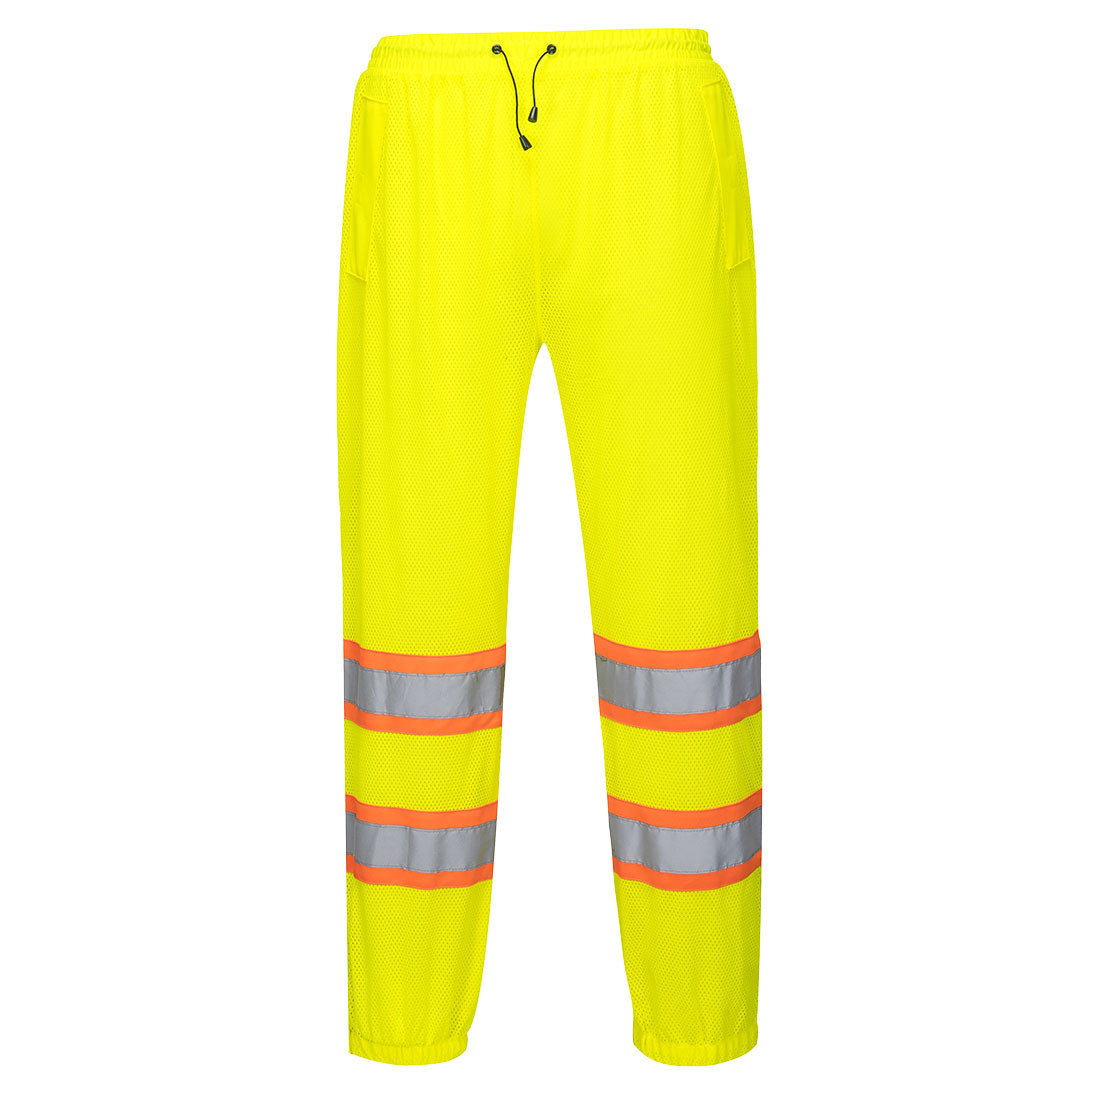 Portwest US386 Mesh Overpants